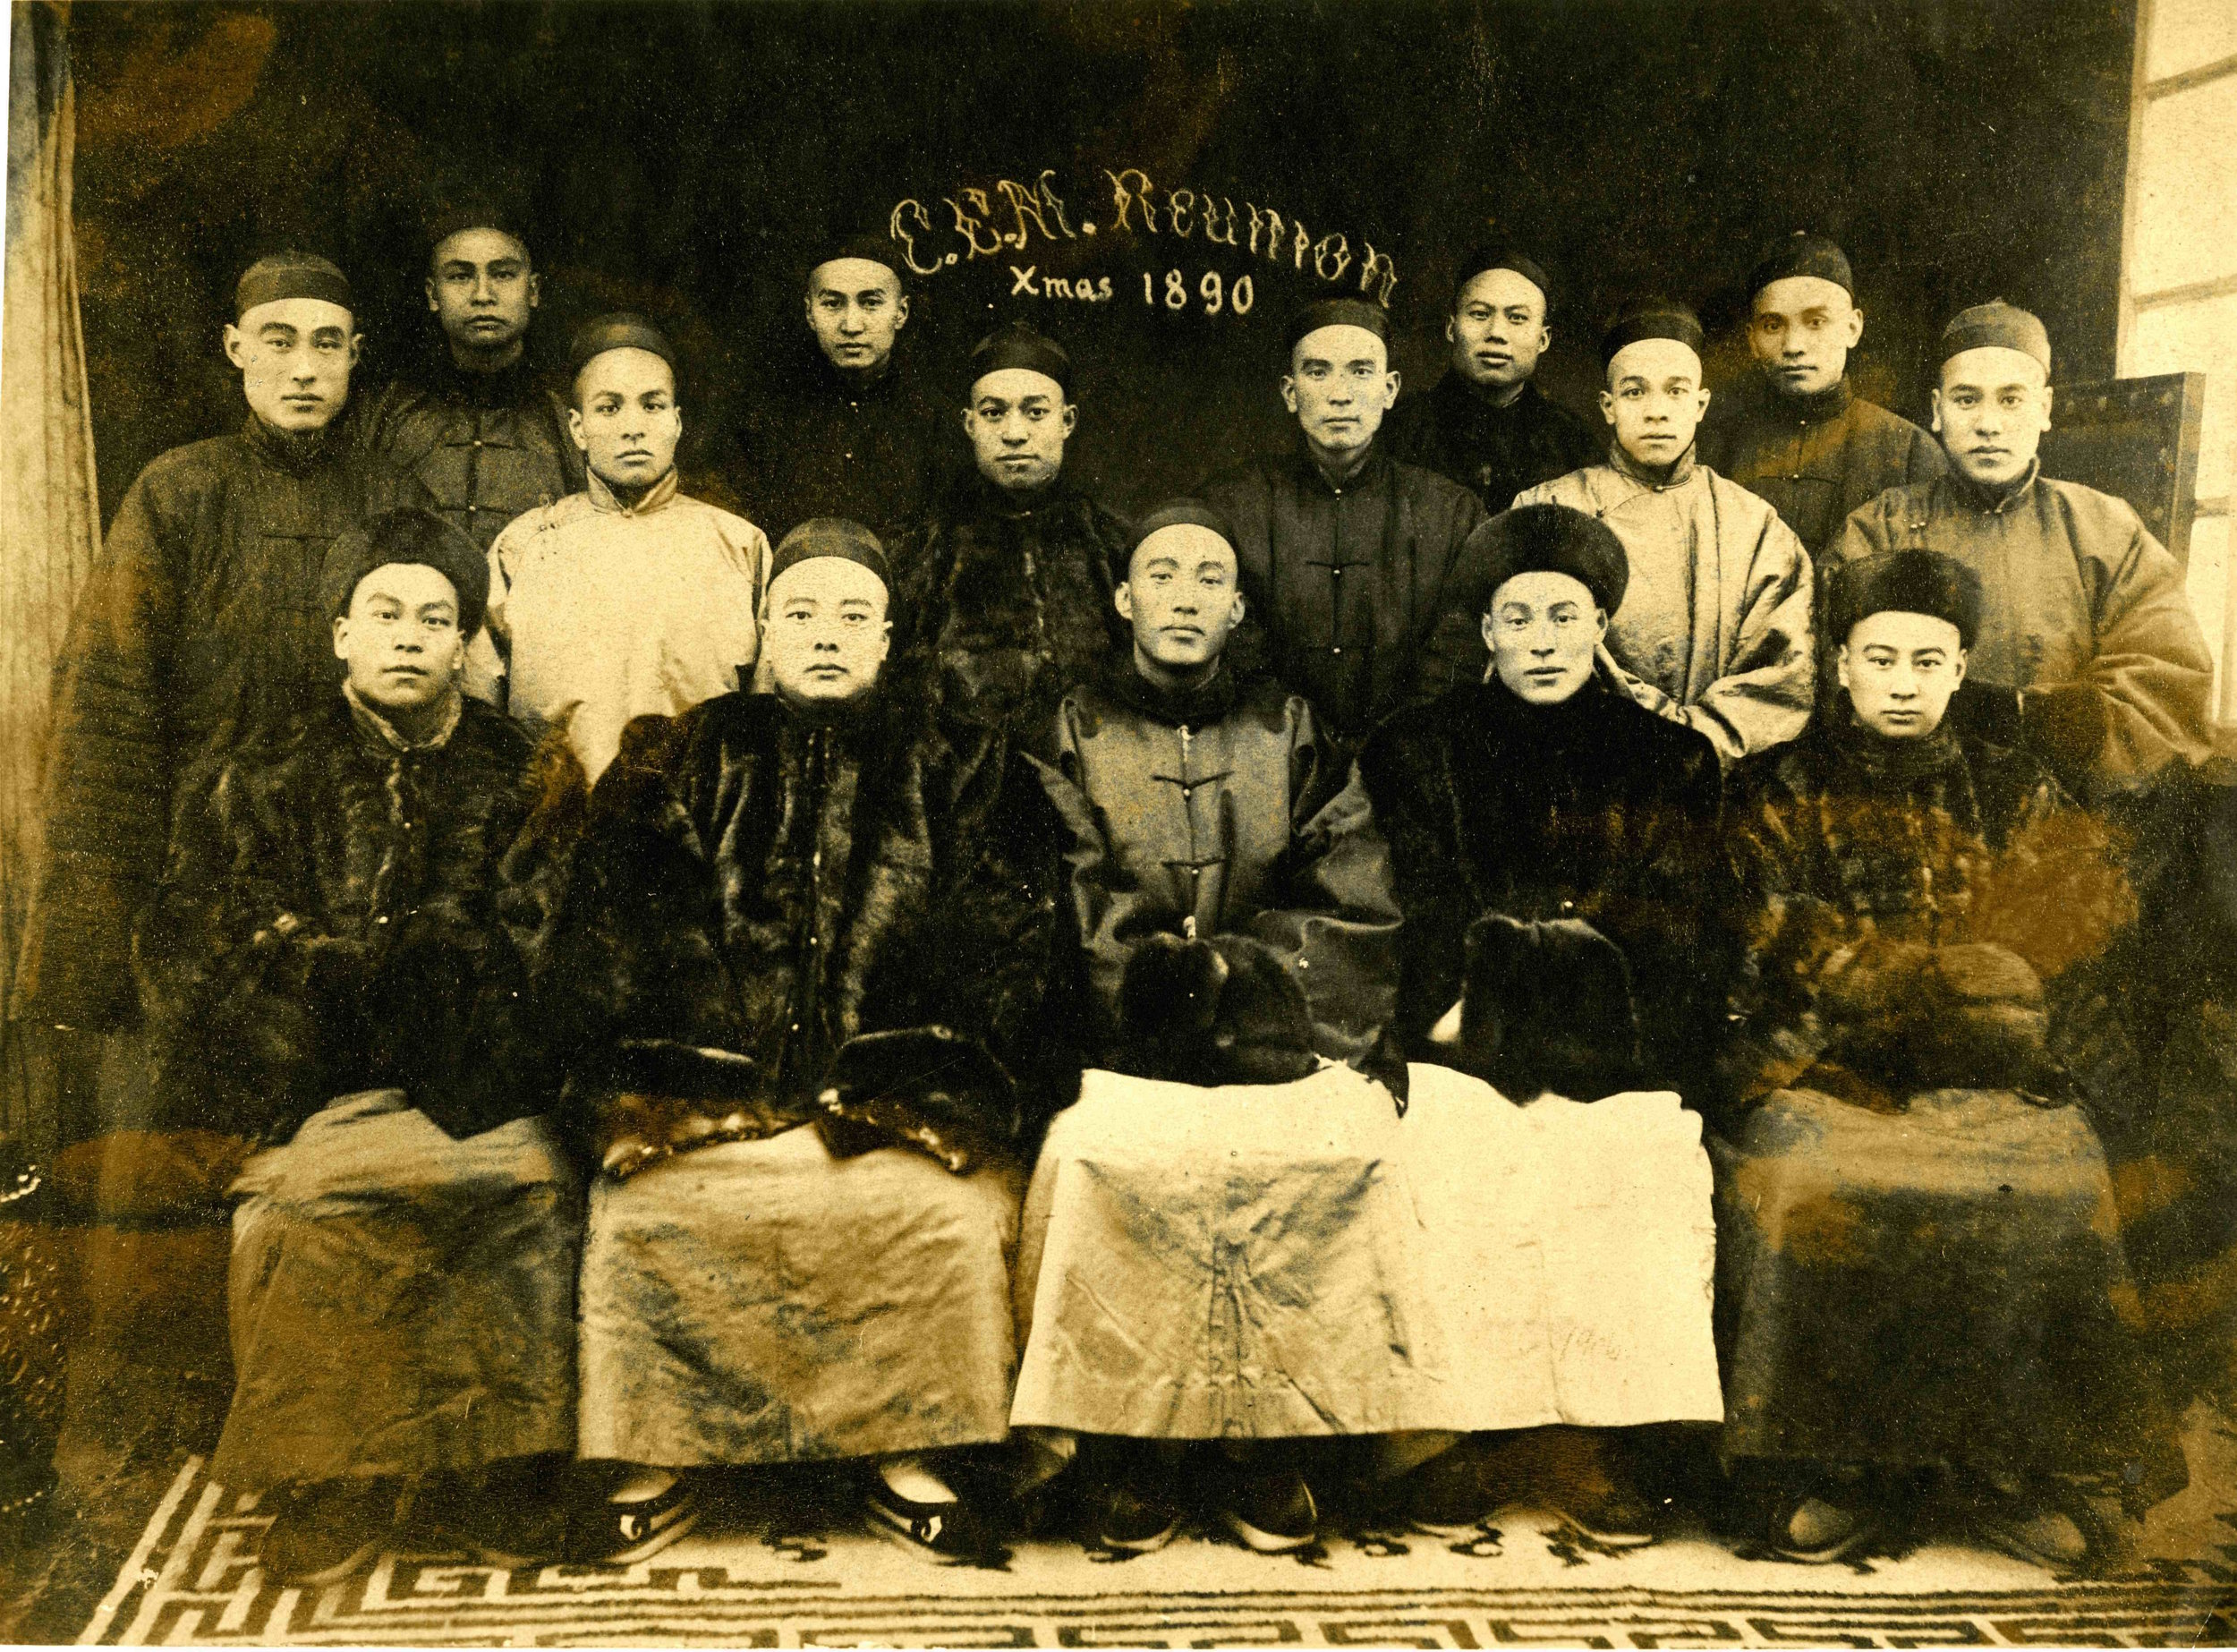 """""""A reunion of the [CEM]students in China,Christmas,1890,""""Thomas E. LaFargue Papers, 1873-1946,2-1-4, courtesy Manuscripts, Archives, and Special Collections, Washington State University Libraries."""